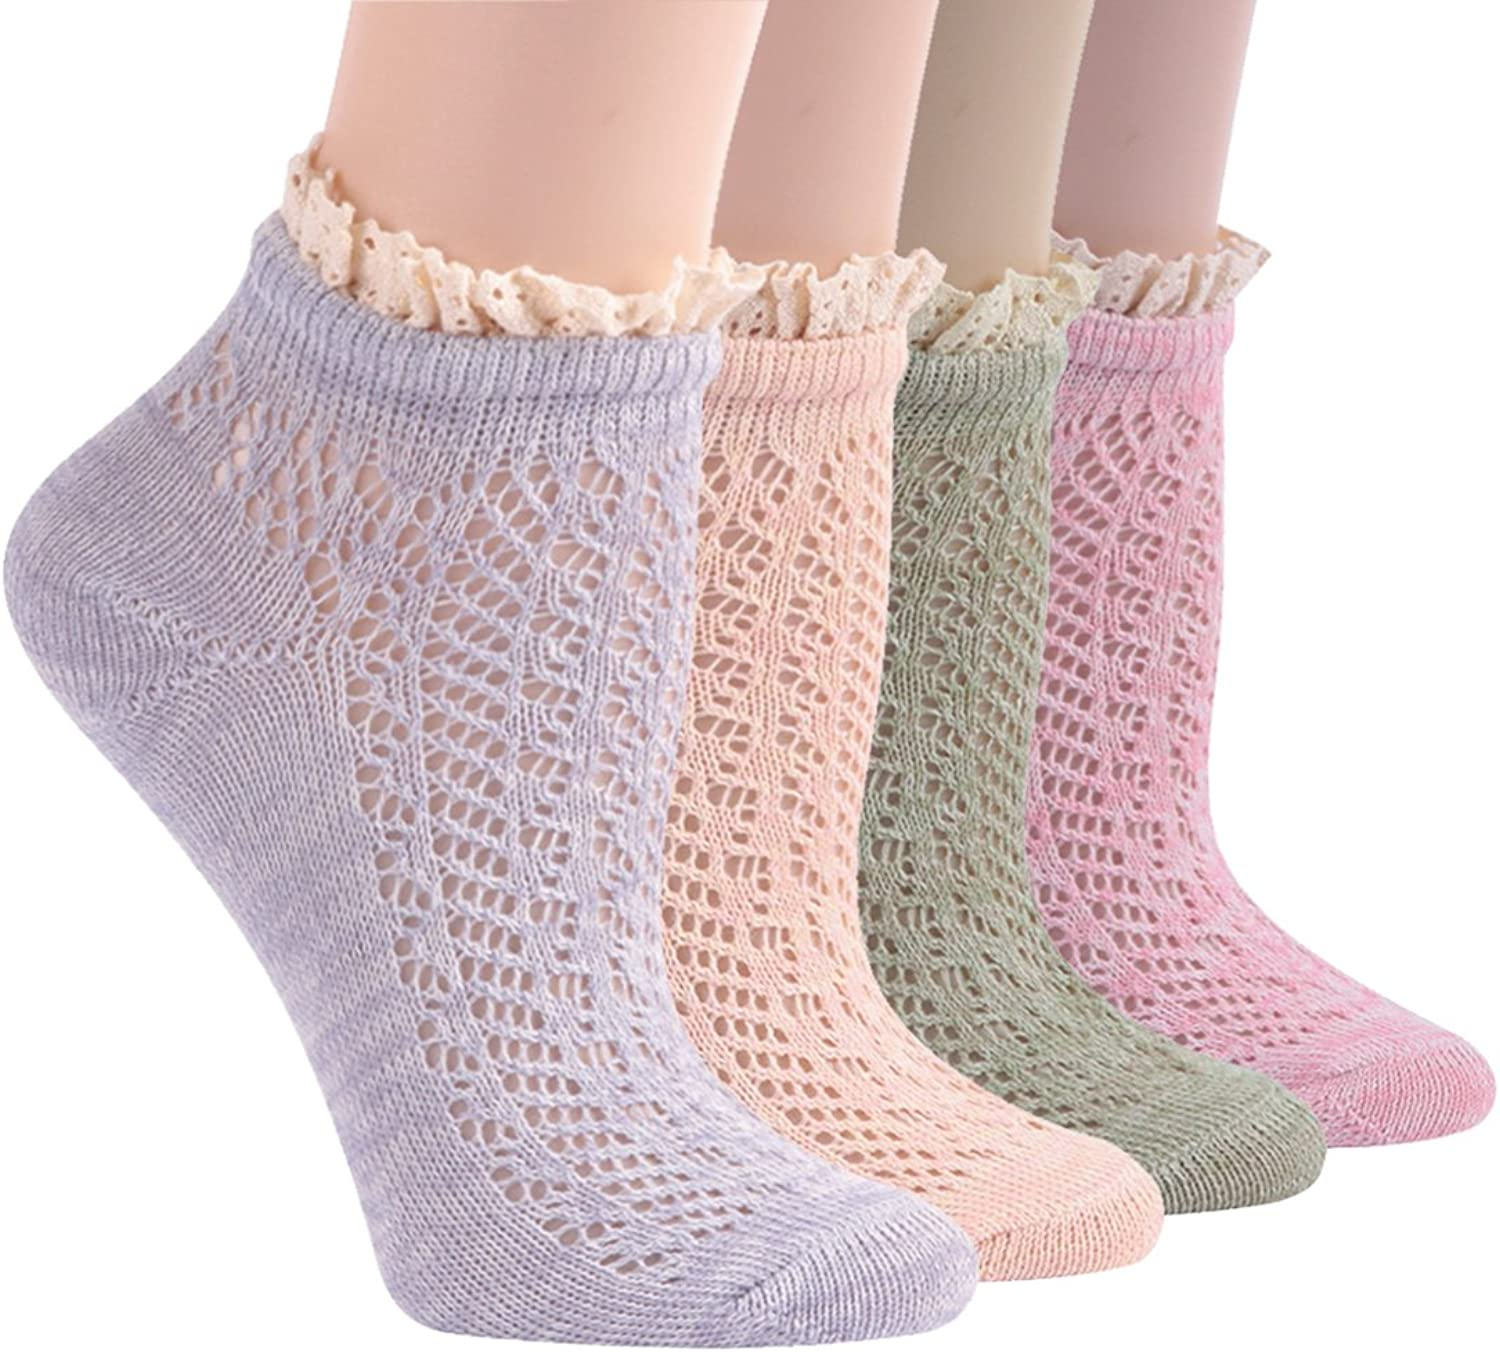 Ankle Socks for Summer, Socks Daze Women's Lace Ruffle Frilly Cool Cotton Casual Novelty Ankle Socks 4 5 Pairs